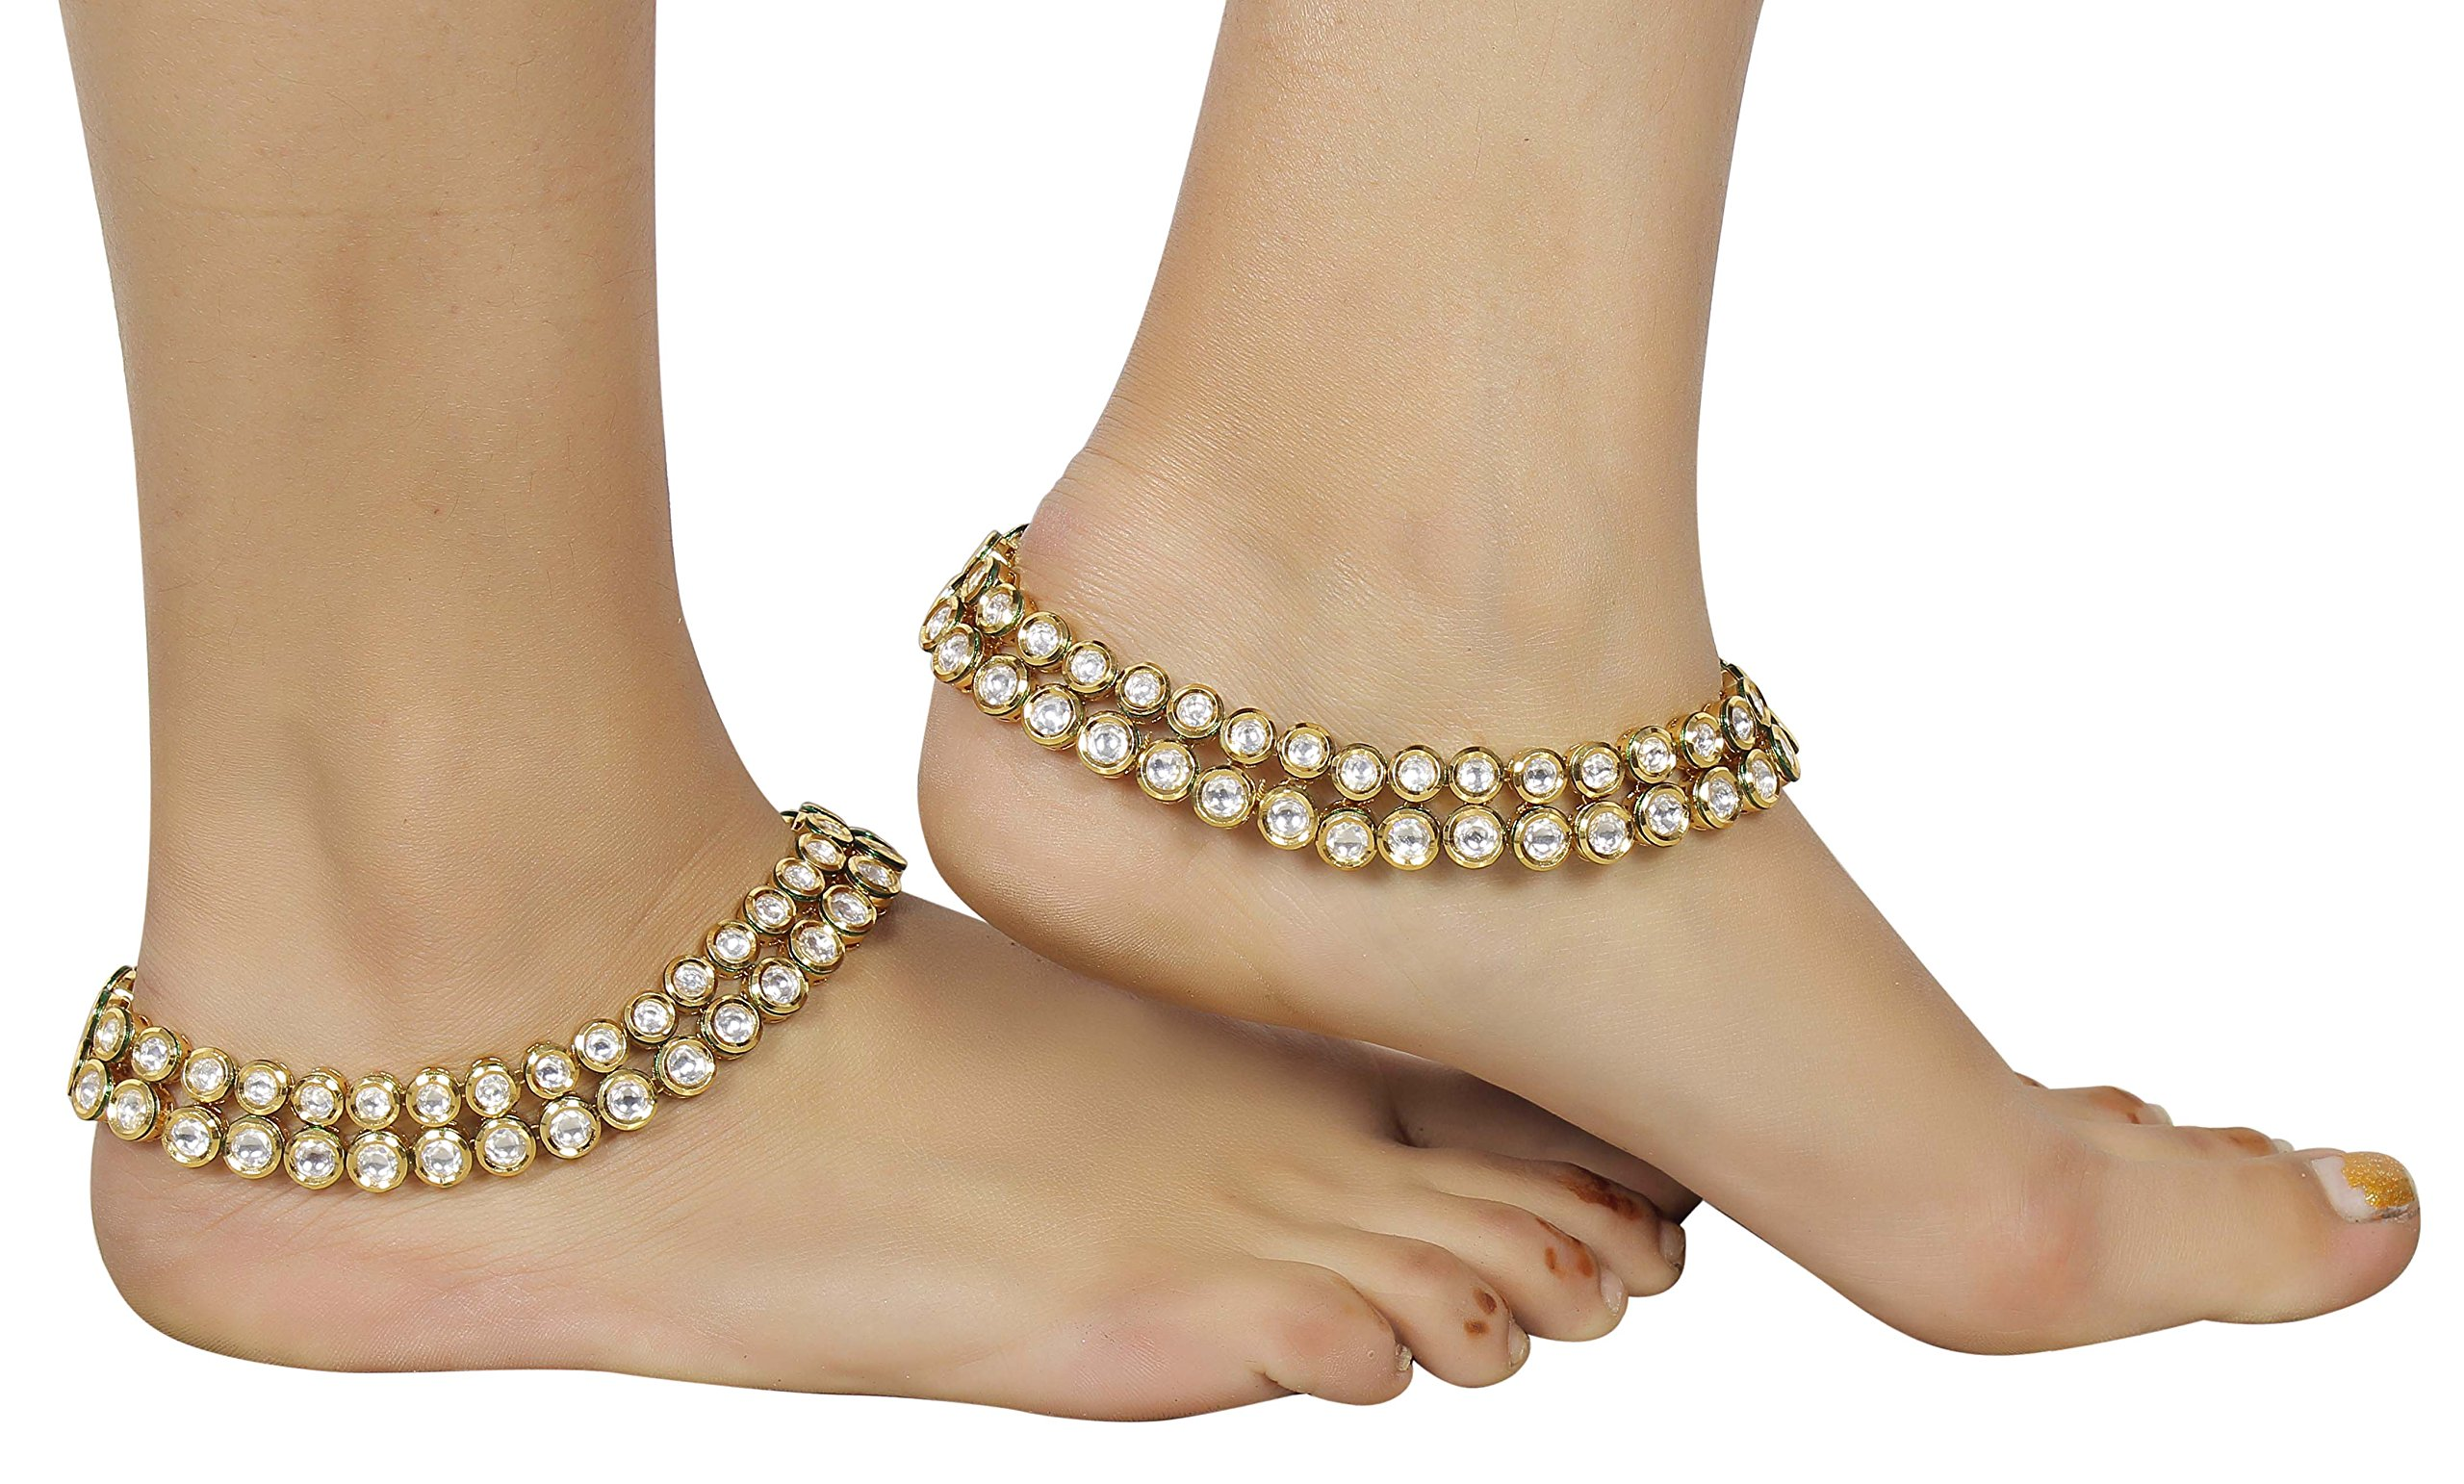 Muchmore Asian Ethnic Traditional Fashion Gold Tone Kundan Stone Anklet Partywear Jewelry by MUCHMORE (Image #5)